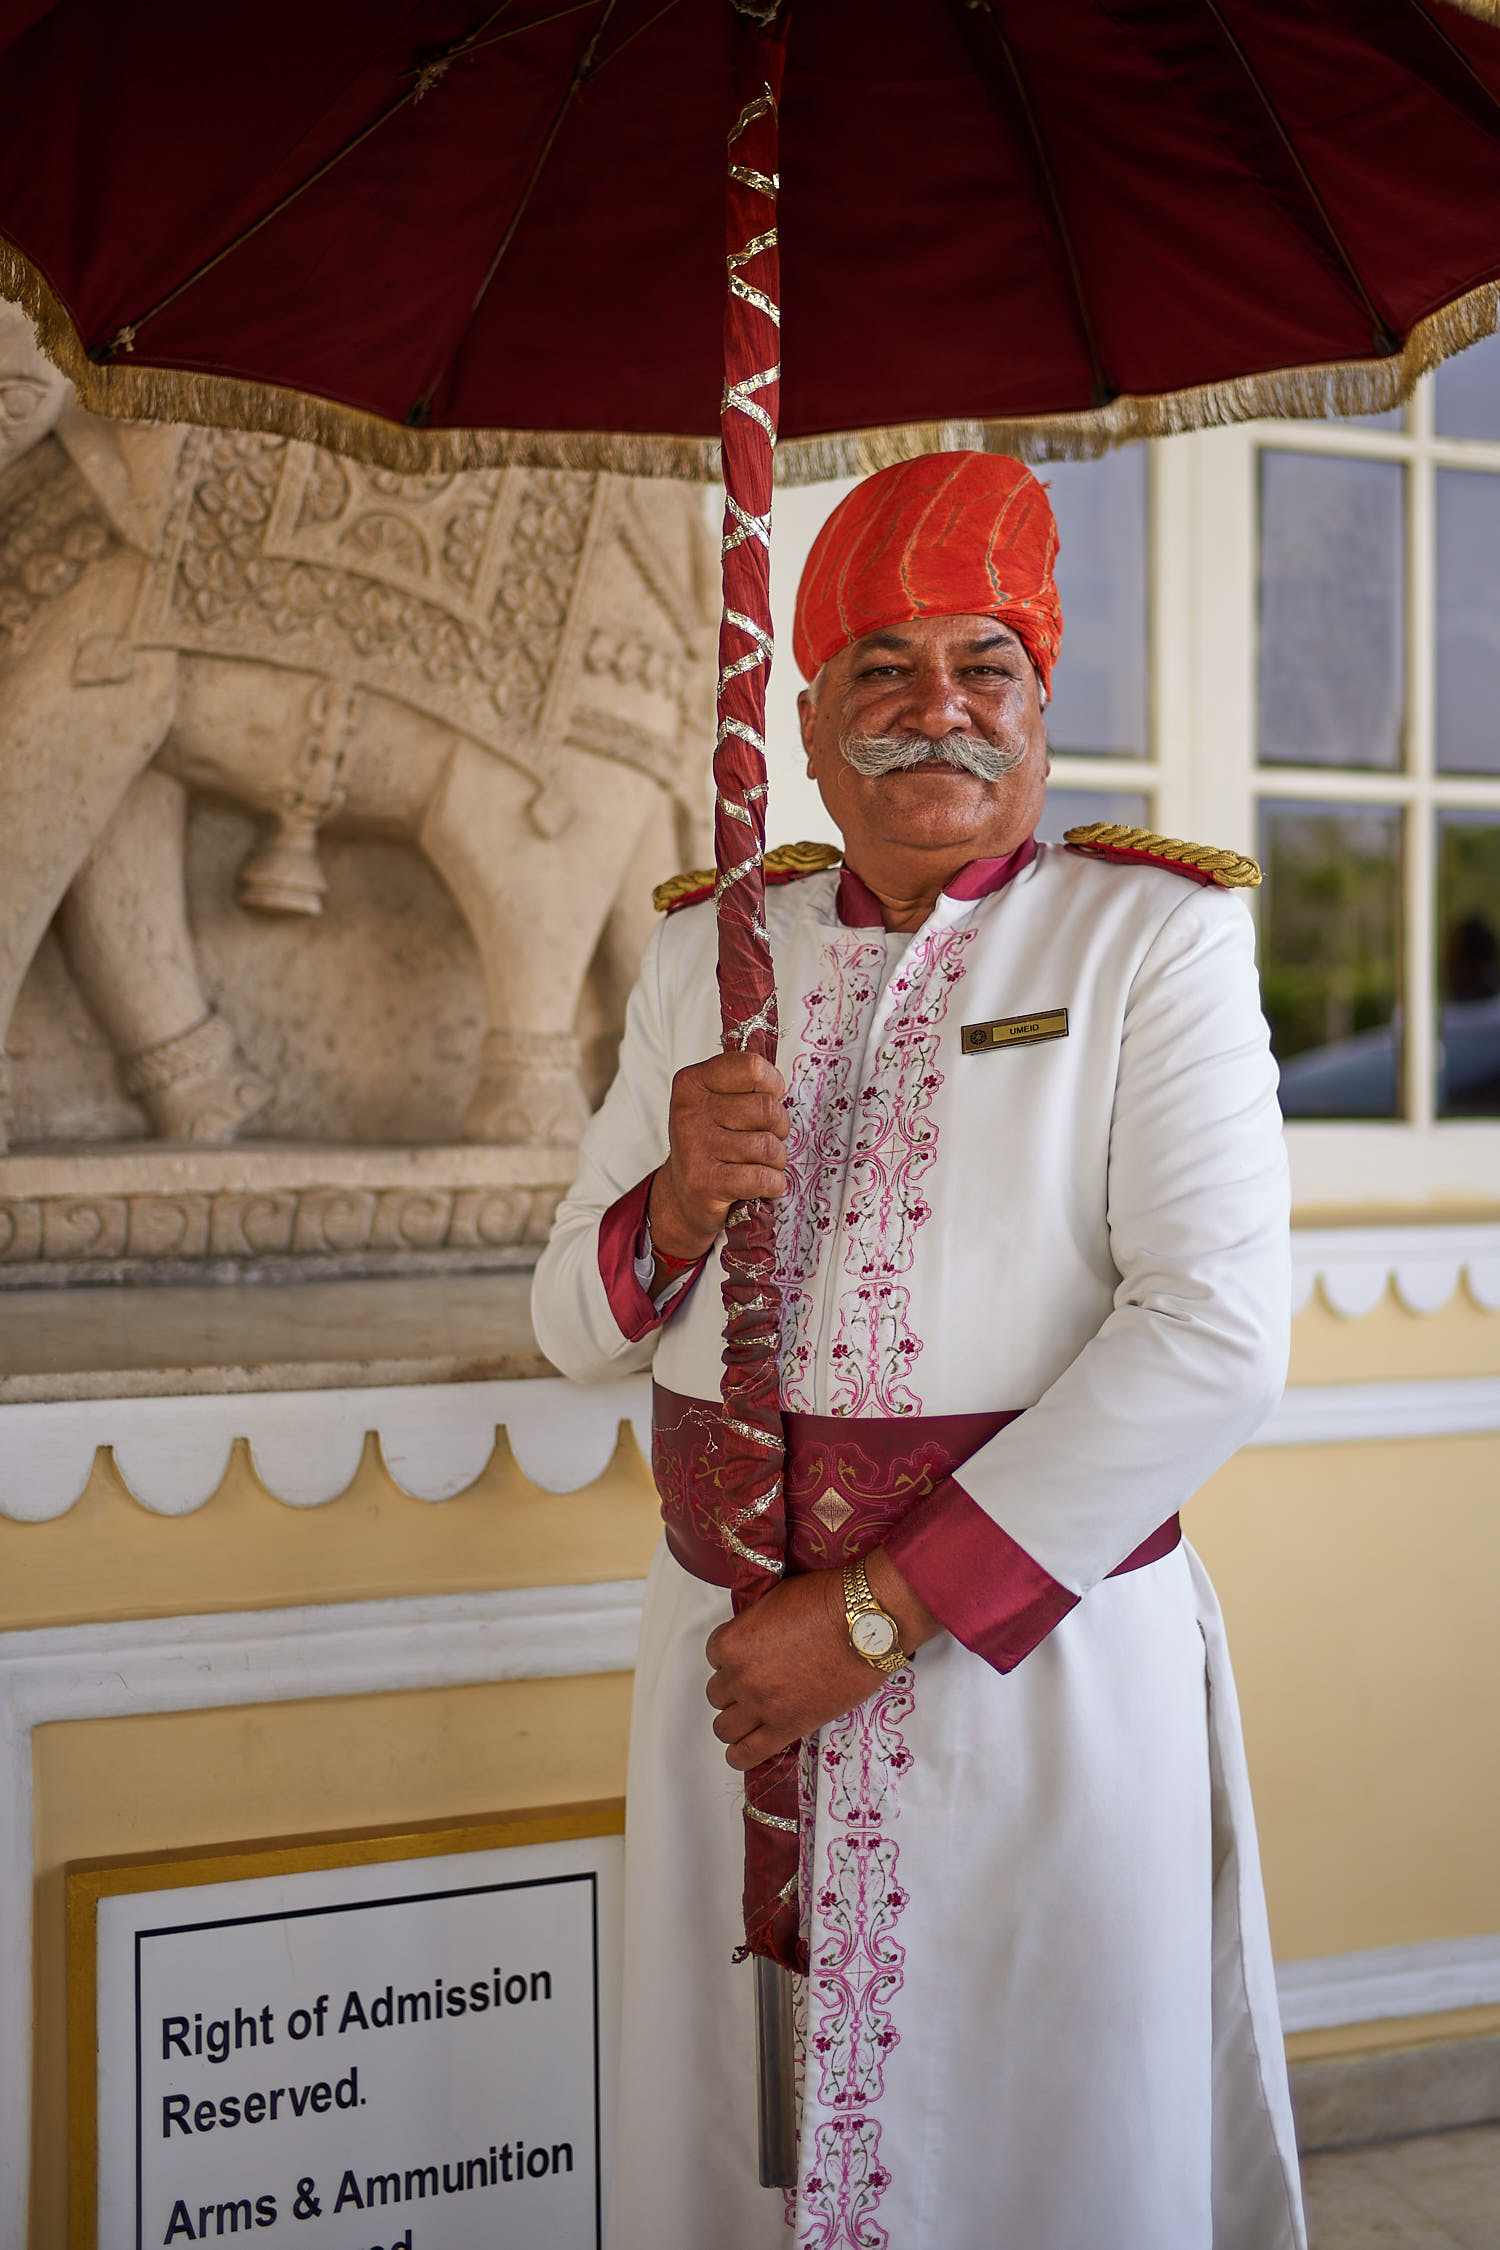 Door man at a palace hotel in Jaipur